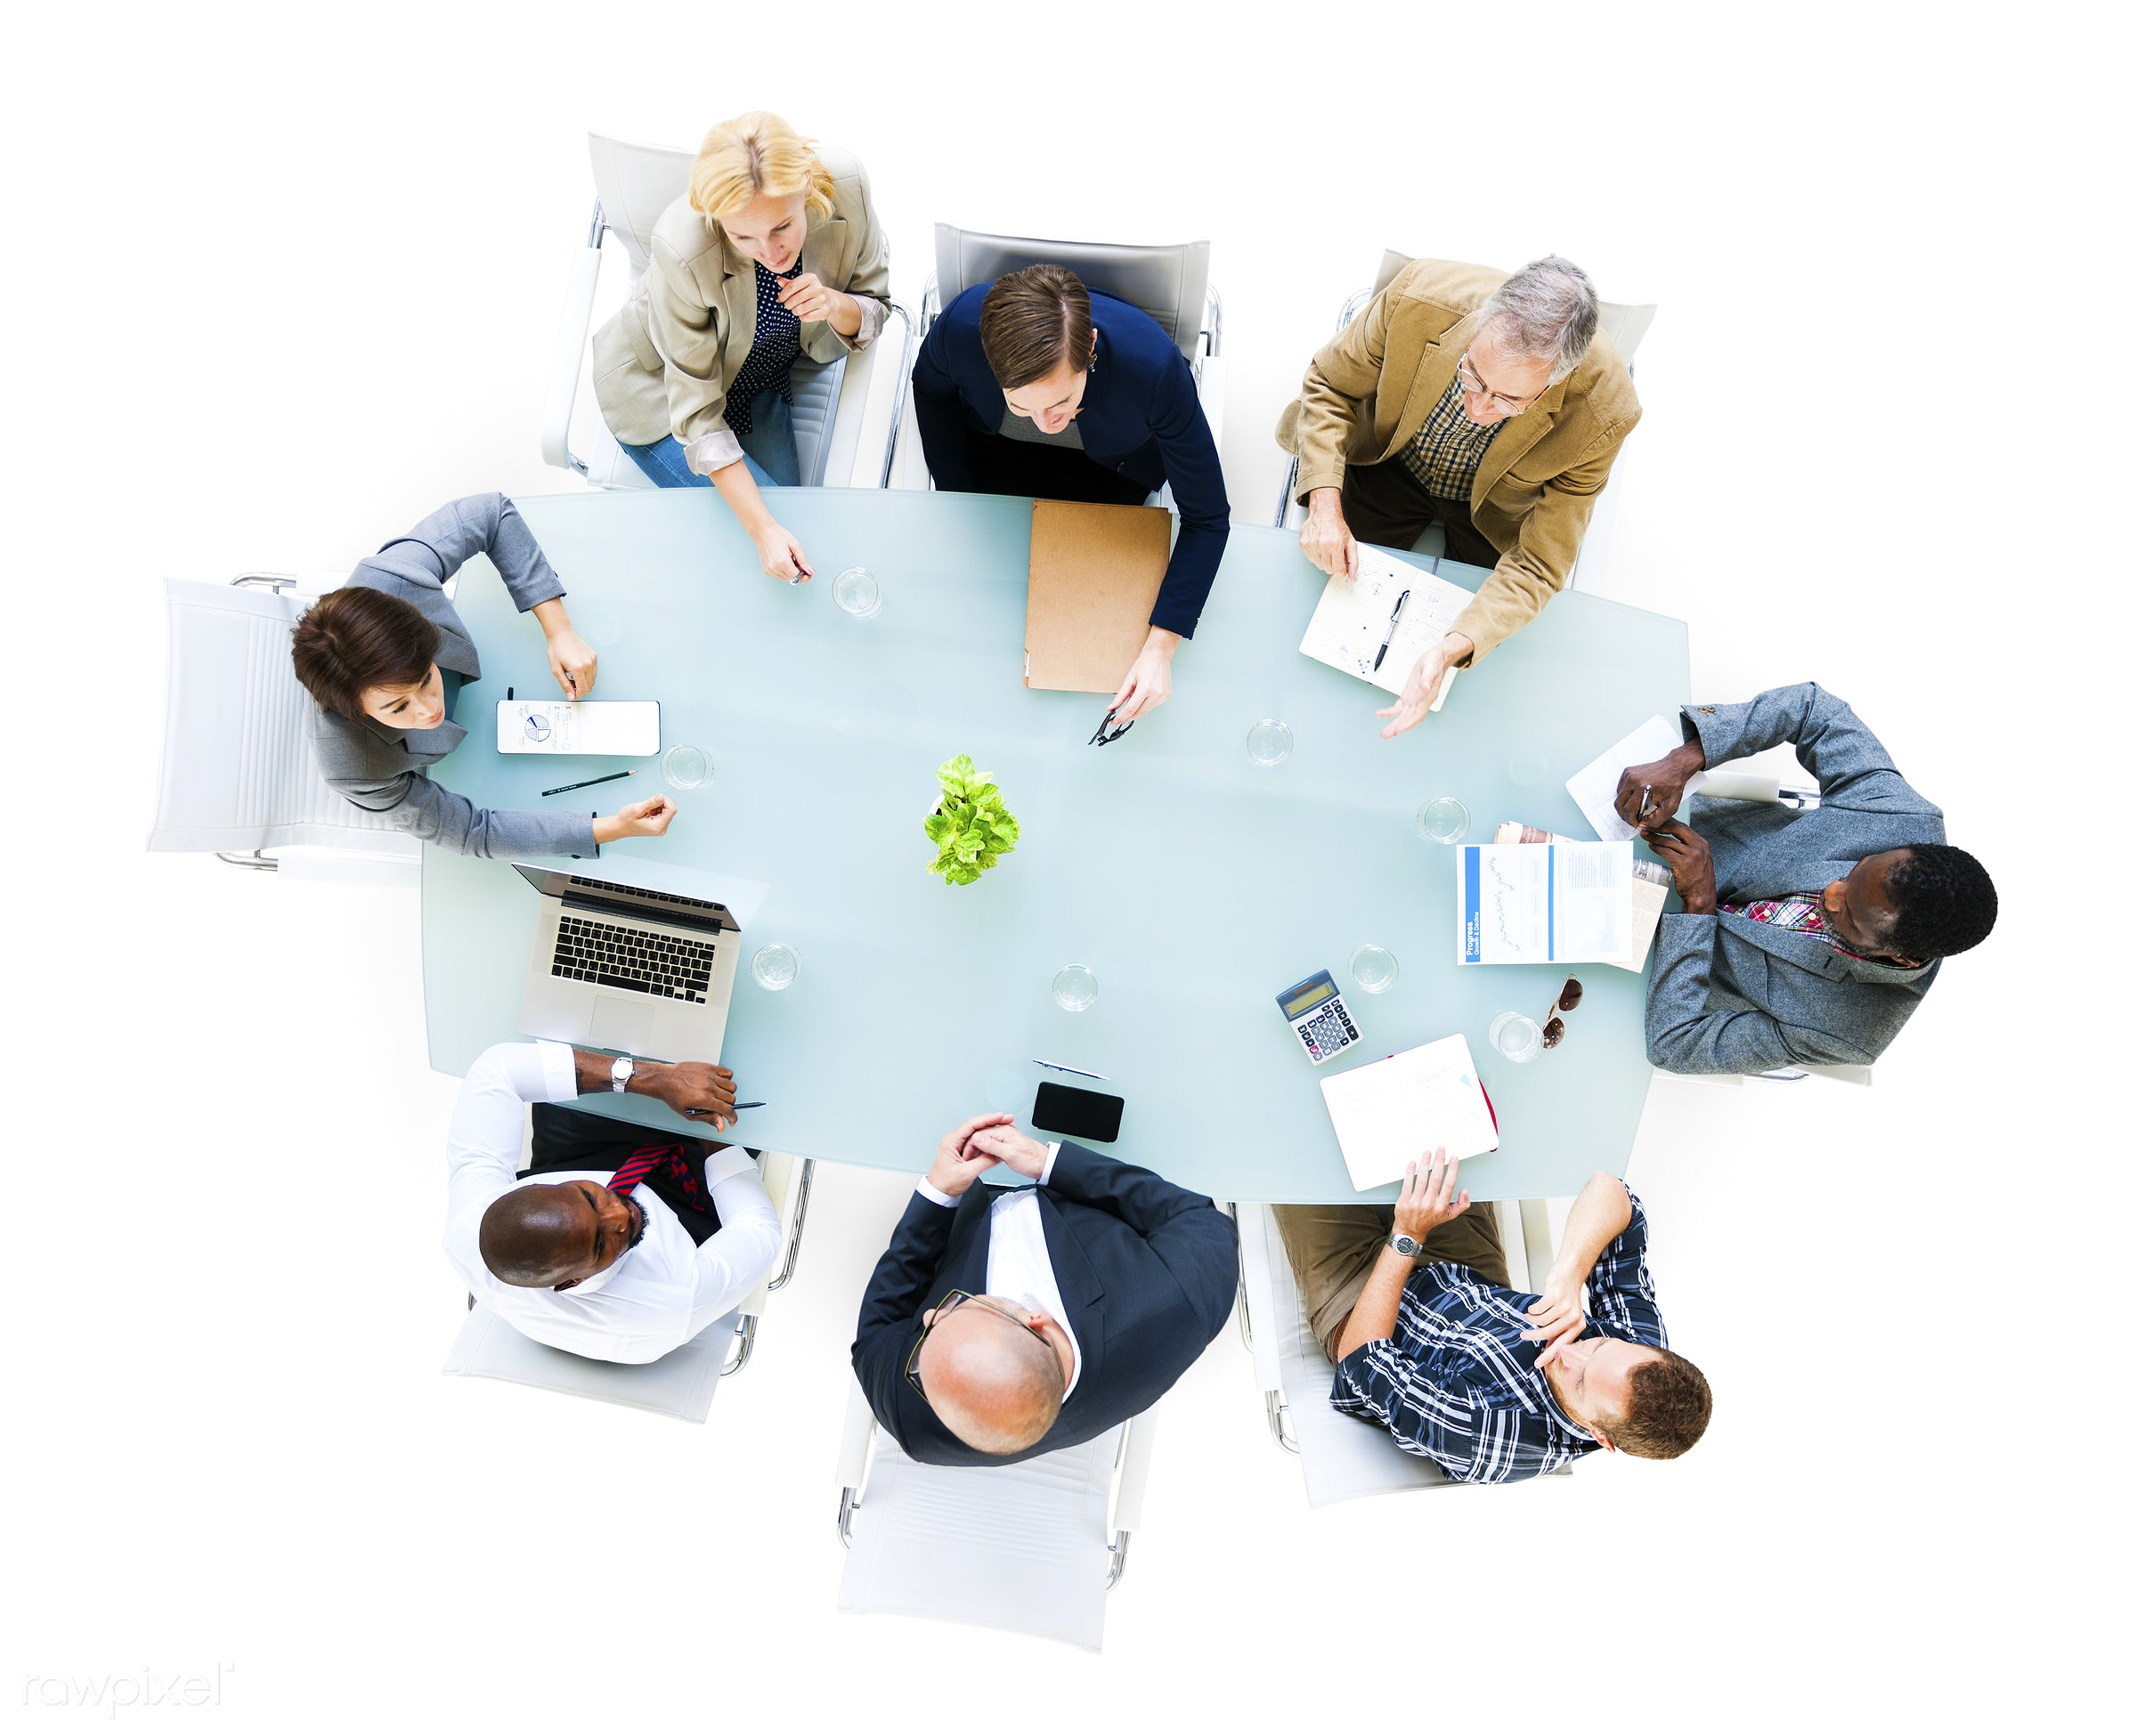 aerial view, african ethnicity, asian ethnicity, board room, brainstorming, business, casual, caucasian, communication,...